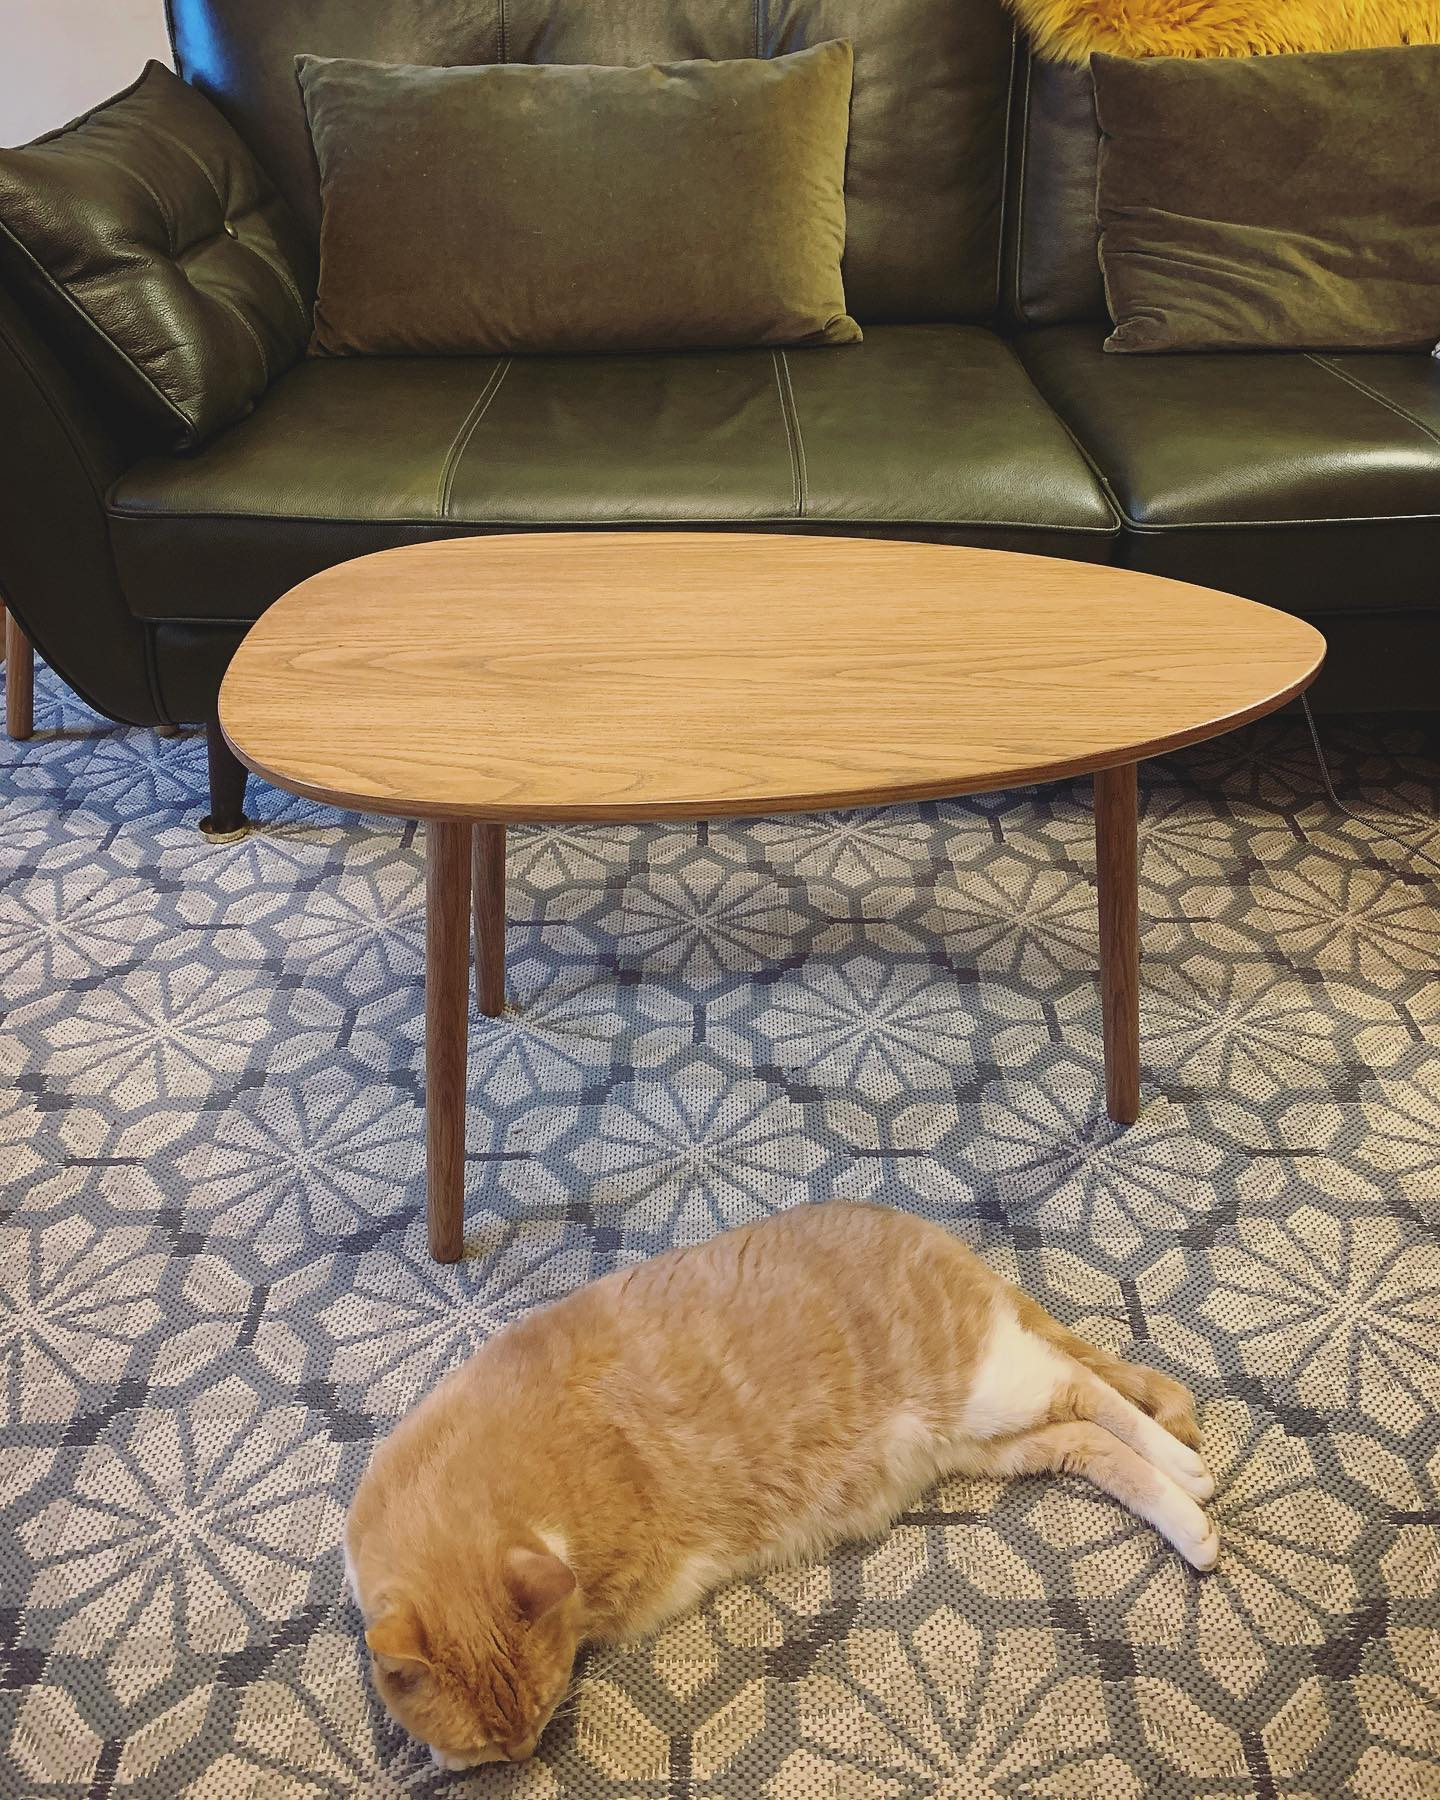 Totally In love with this table! This is our favourite part of making bespoke pieces, when we can stand back and take in the finished article. Georgie likes it too Have a comfy Friday evening everyone! ...#midcenturymodern #bespoke #oak #handcrafted #homewares #geometric #modern #ercolstyle #